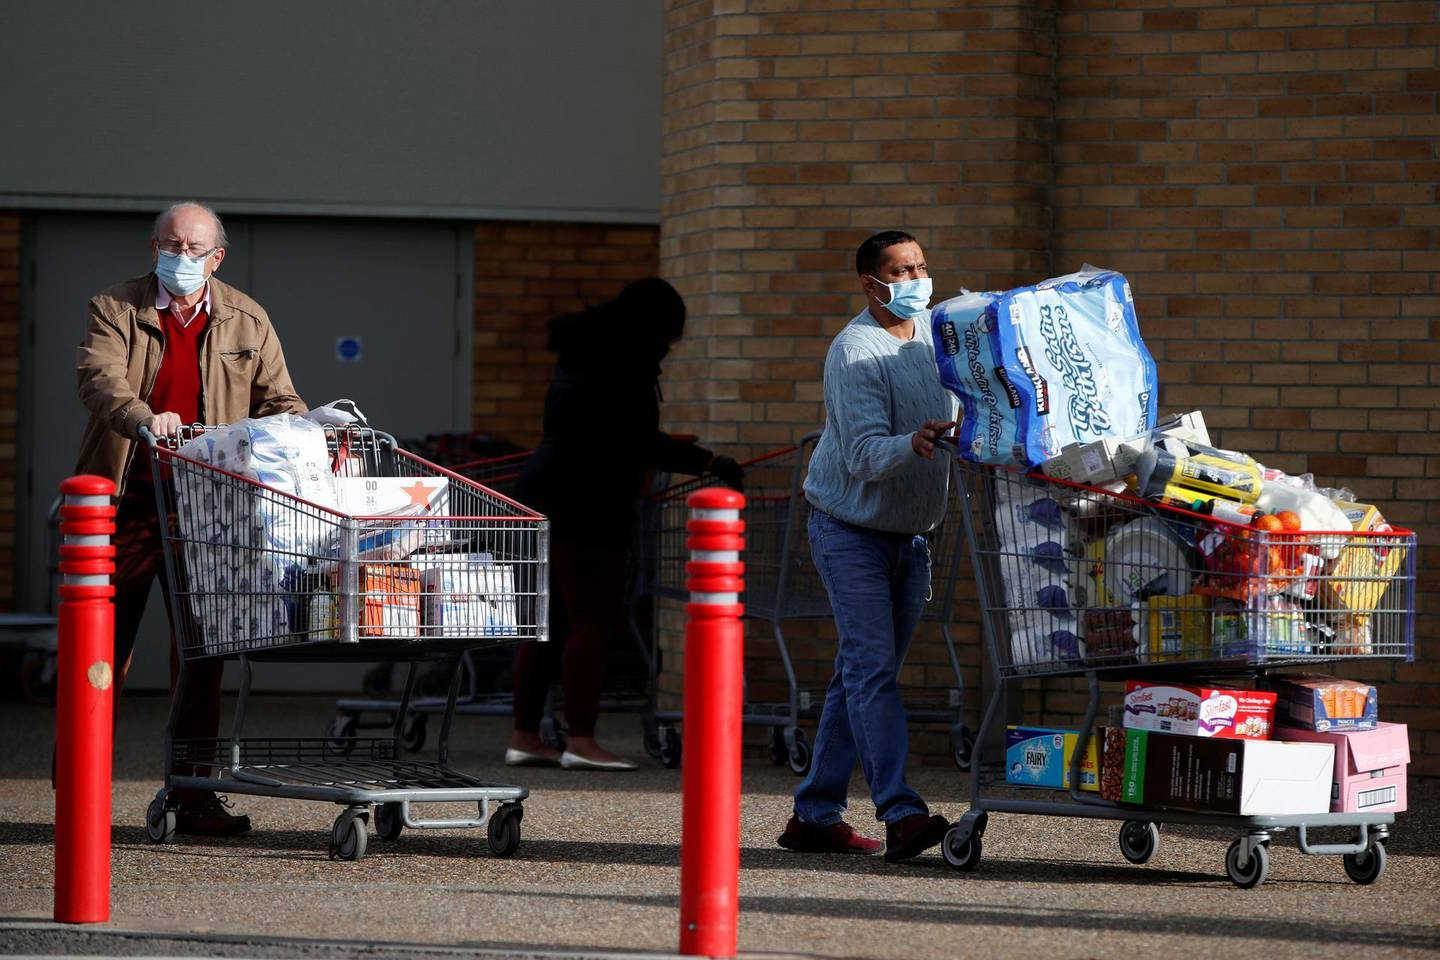 FILE PHOTO: People push full shopping carts outside a store after new nationwide restrictions were announced during the coronavirus disease (COVID-19) outbreak in Watford, Britain, November 2, 2020. REUTERS/Paul Childs/File Photo